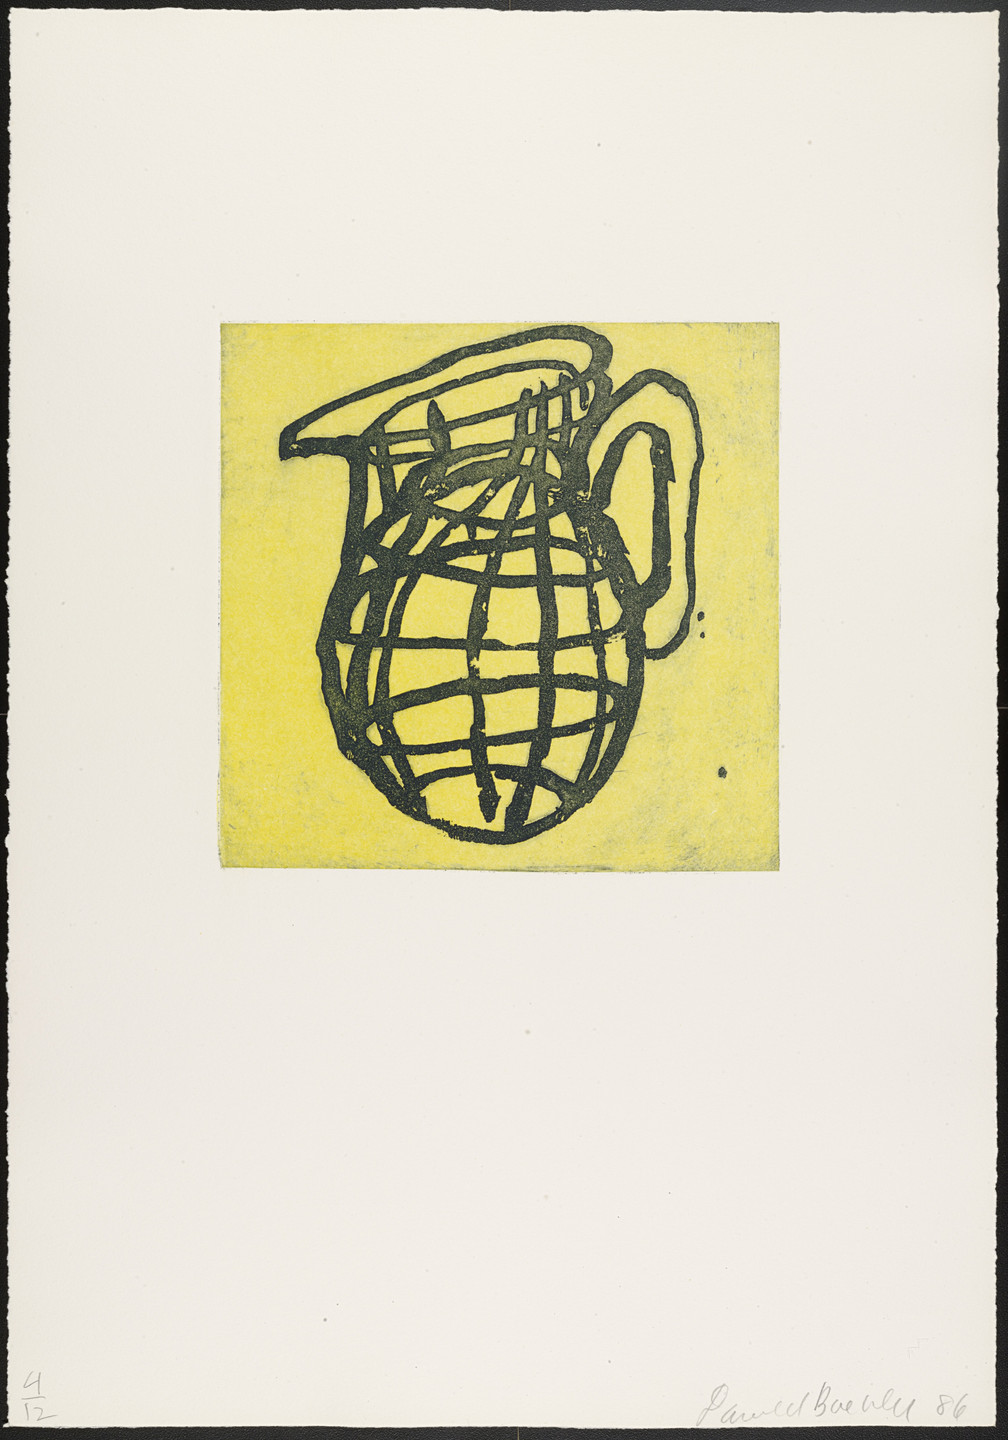 Donald Baechler. Untitled from Objects. 1986